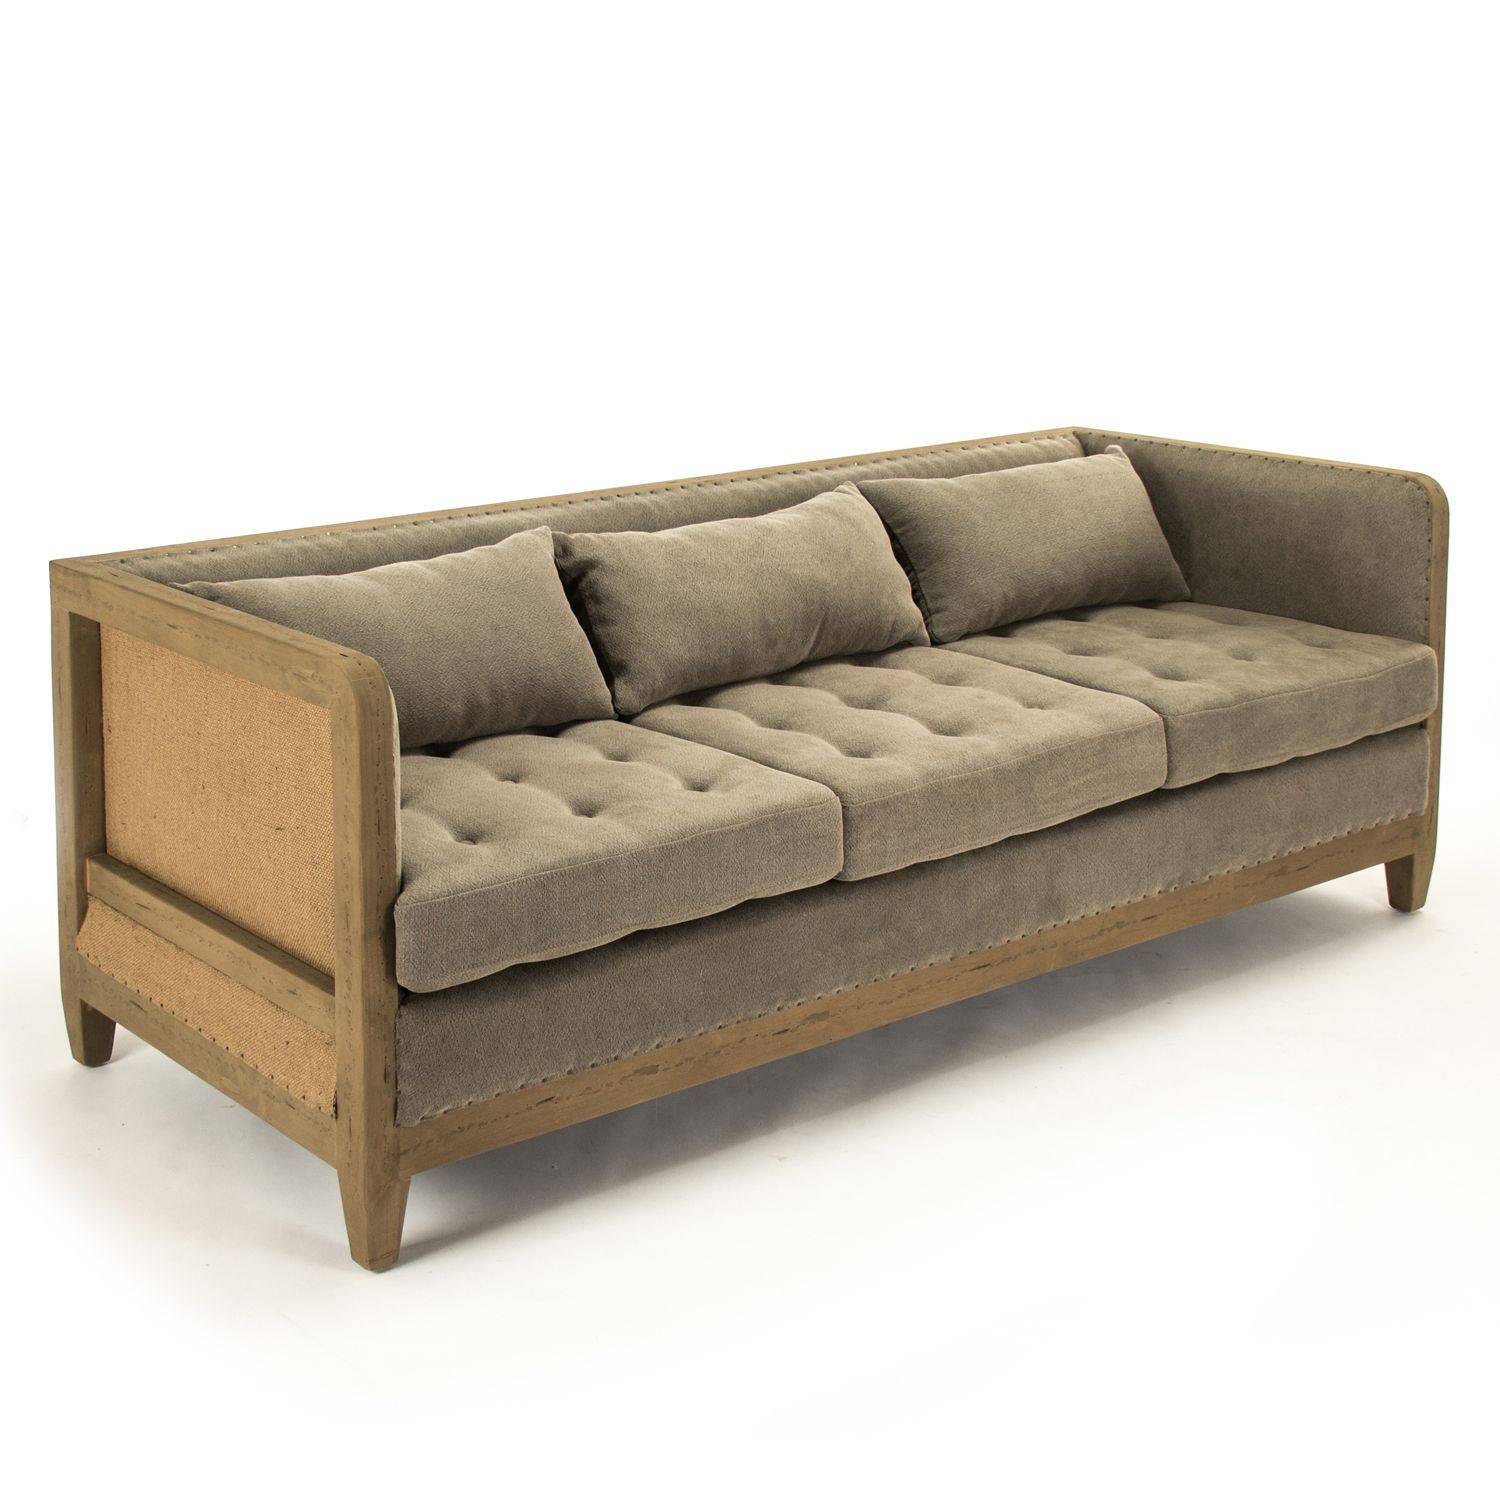 The Vert Sofa Offers Rustic, Vintage-inspired